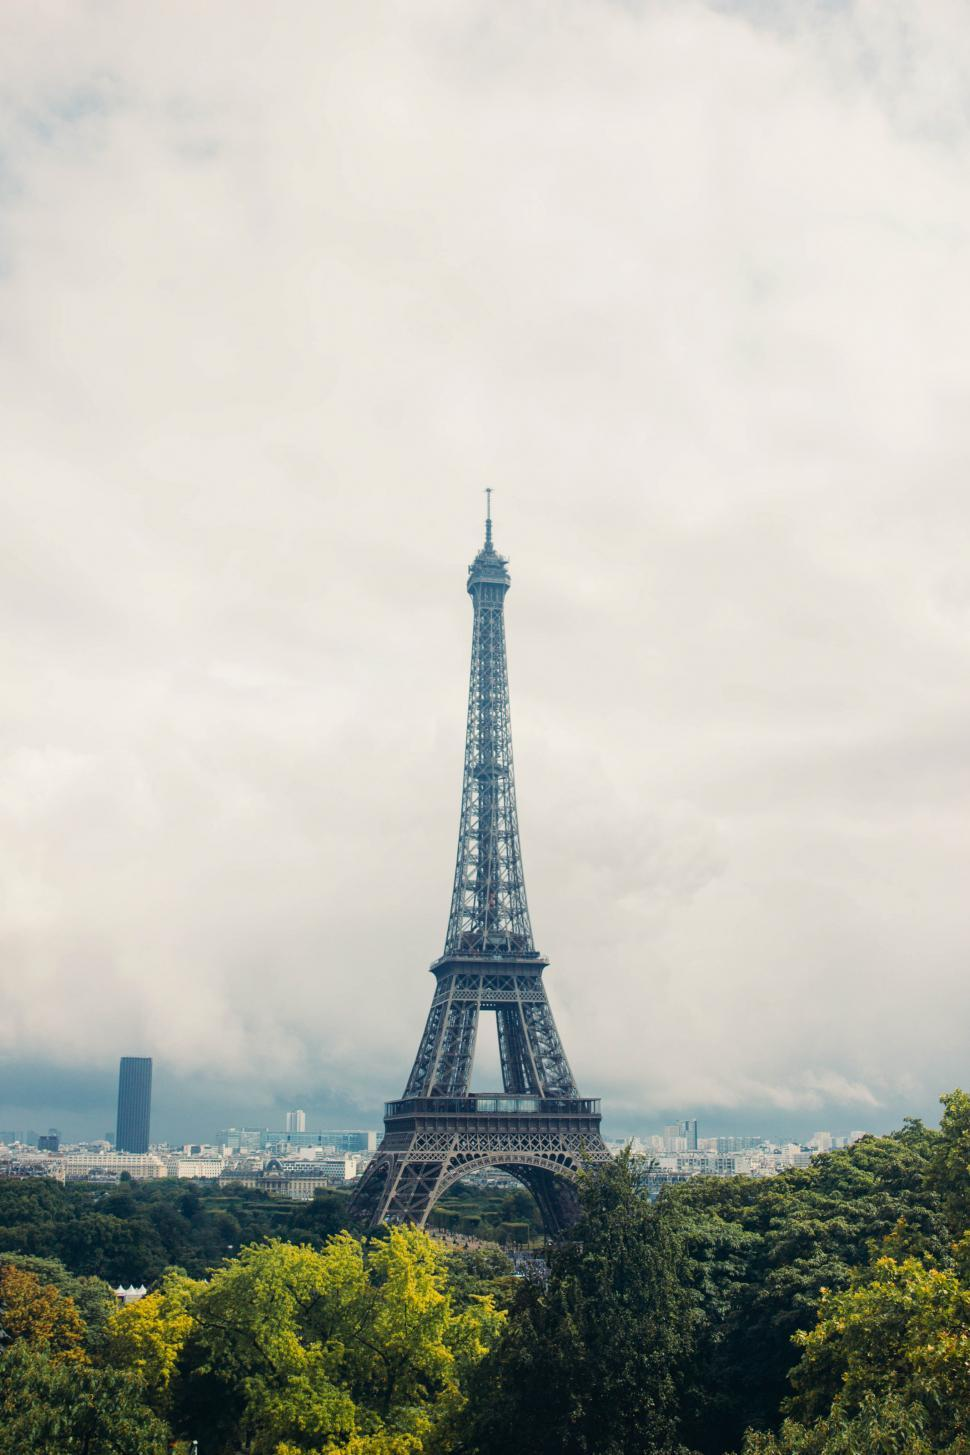 Download Free Stock HD Photo of Eiffel tower surrounded by trees Online